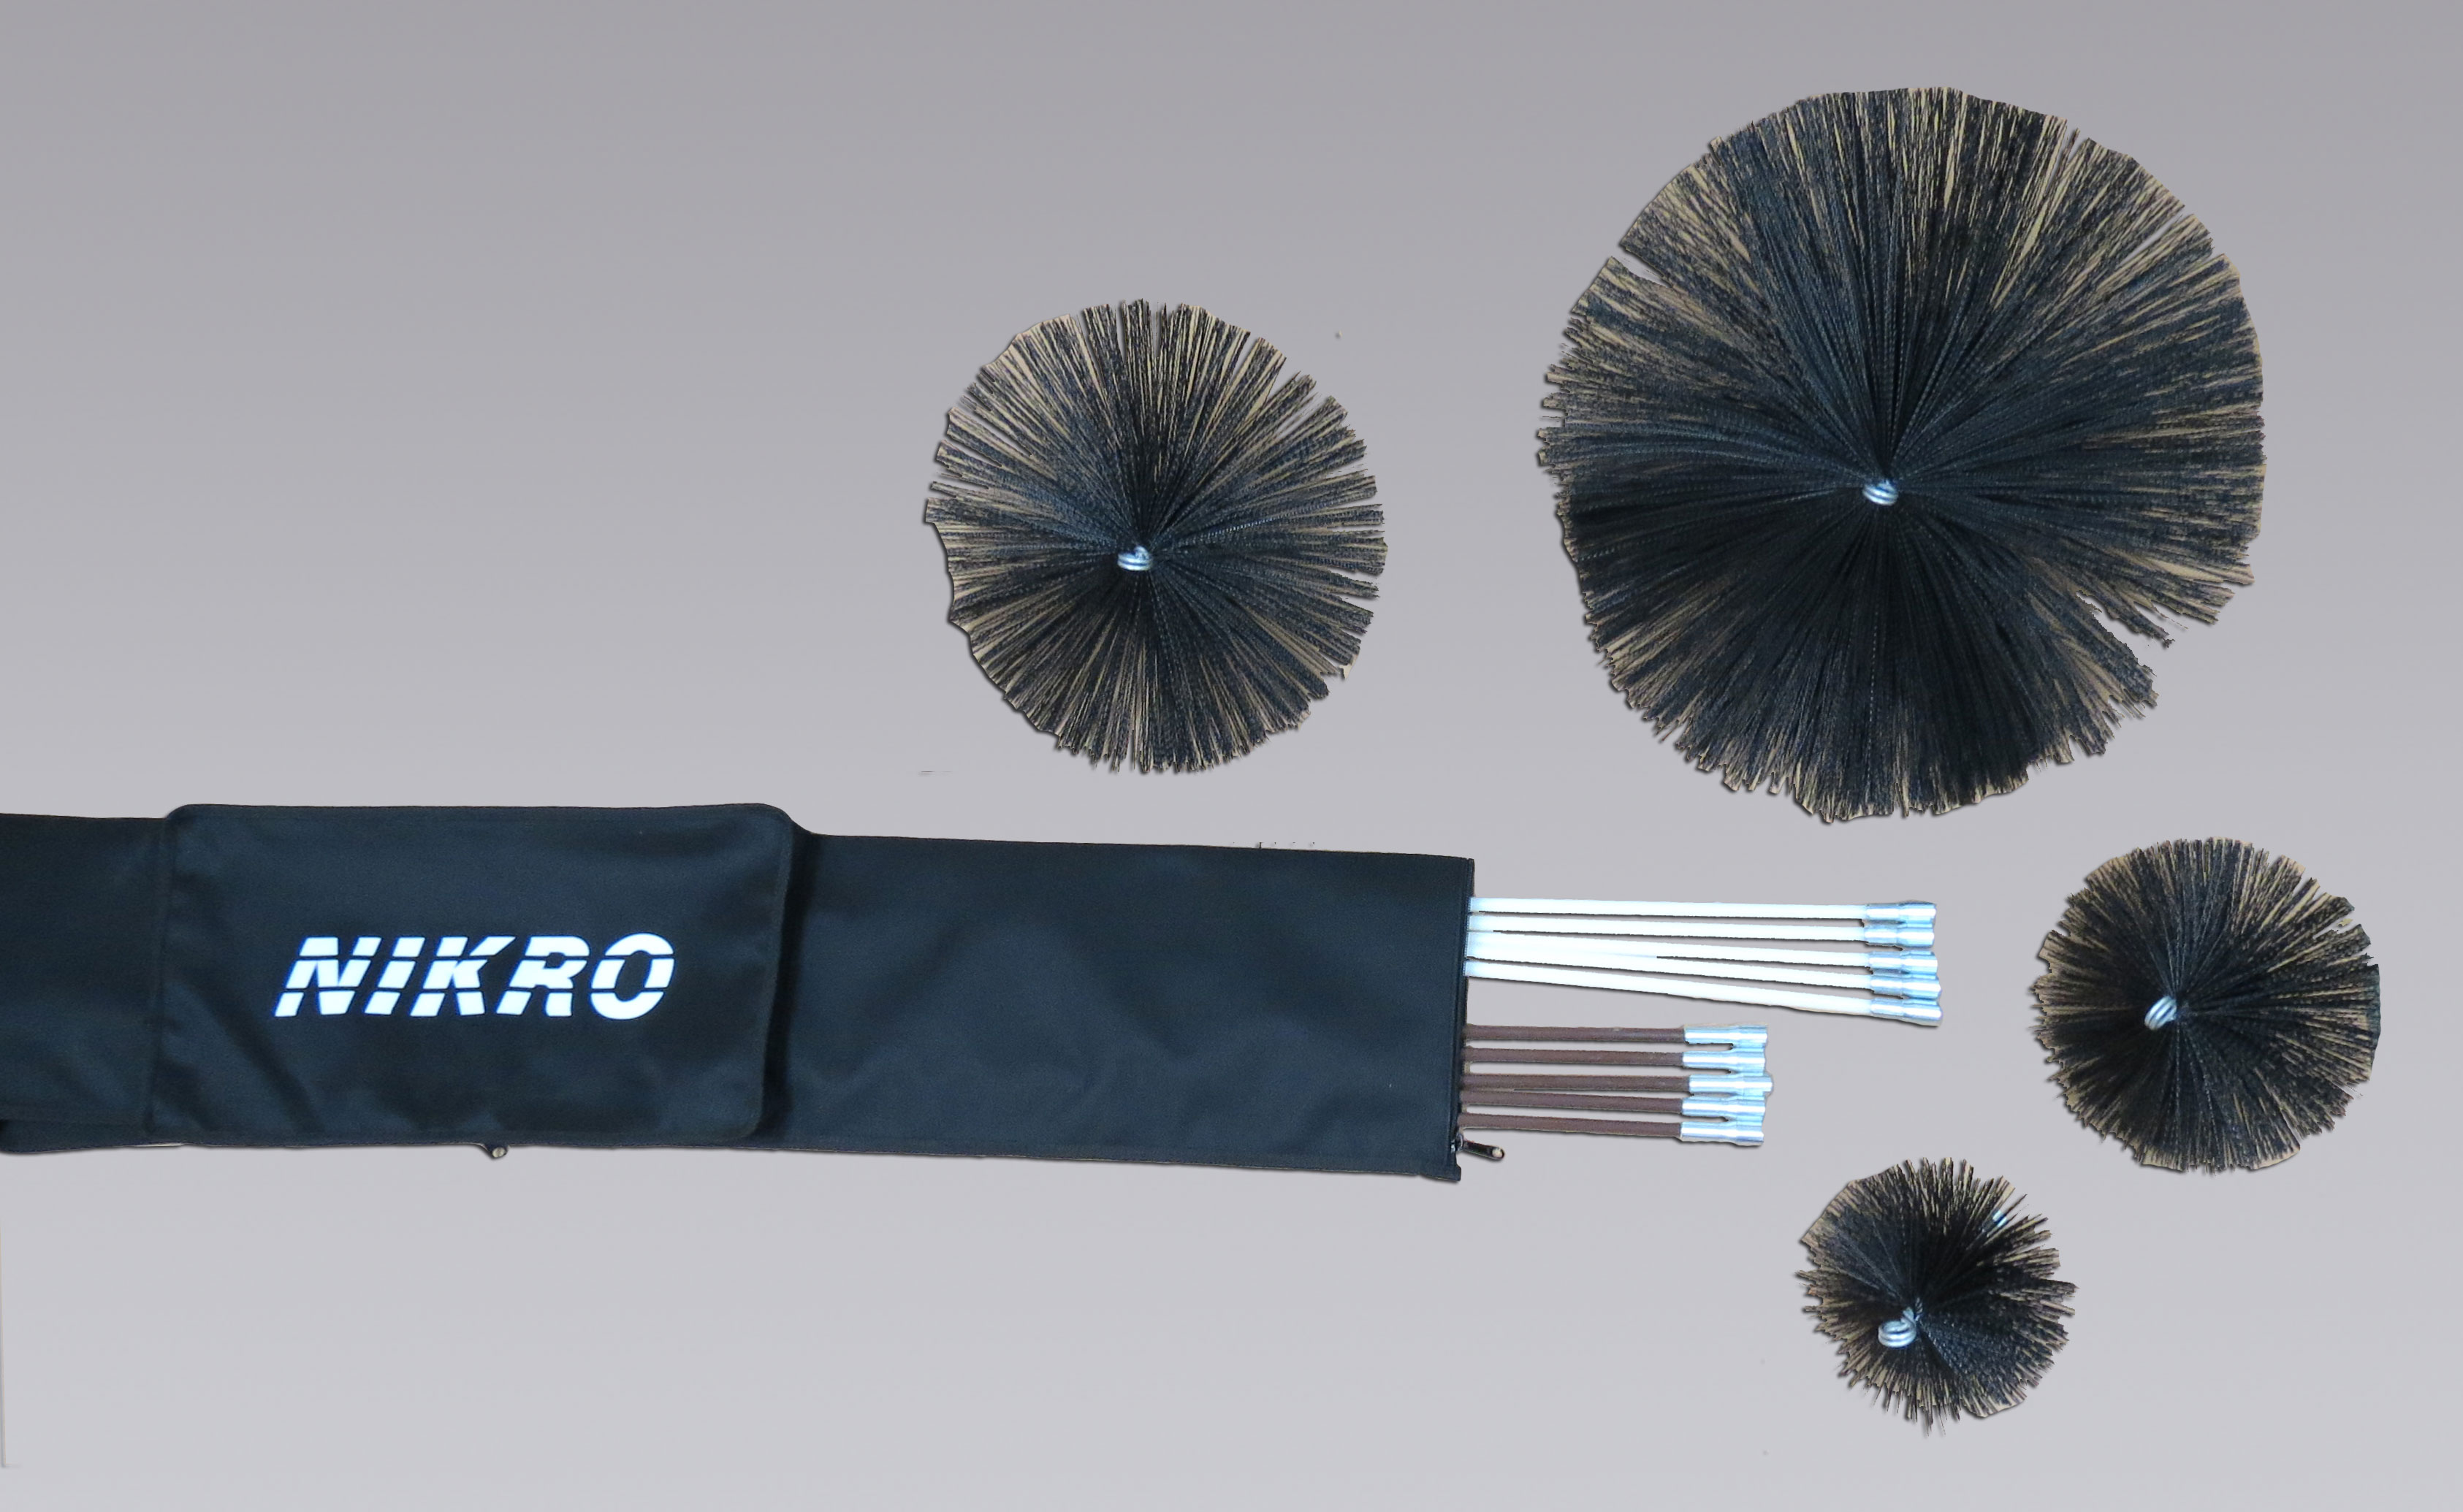 NIKRO 860233 - Manual Brush Kit - Air Duct Cleaning Equipment & Supplies 